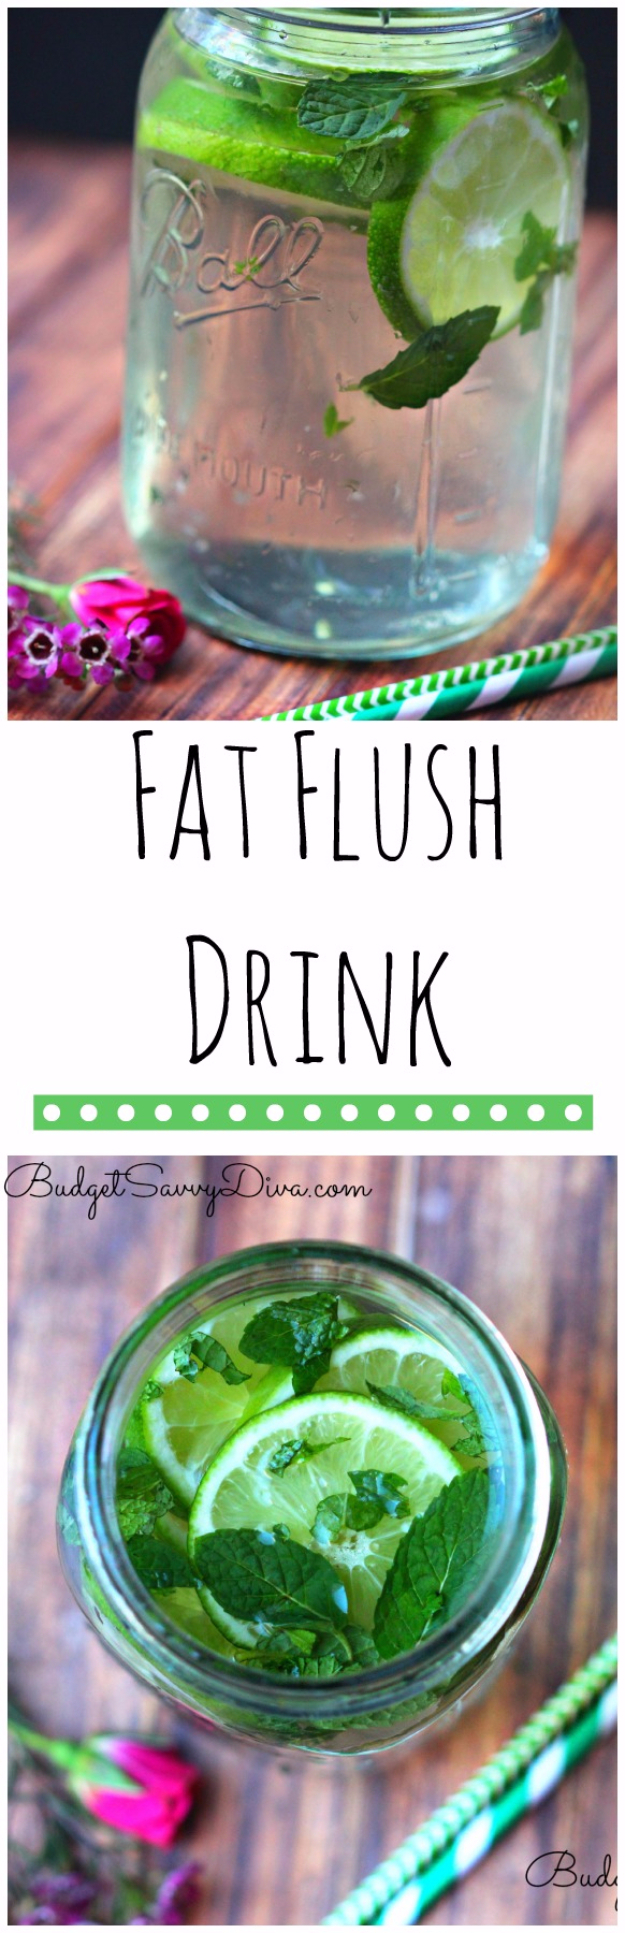 Best DIY Hacks for The New Year - Drink Green Tea To Flush Fat - Easy Organizing and Home Improvement Ideas - Tips and Tricks for Quick DIY Ideas to Simplify Life - Step by Step Hack Tutorials for Genuis Ways to Make Quick Things Easier #diyhacks #hacks